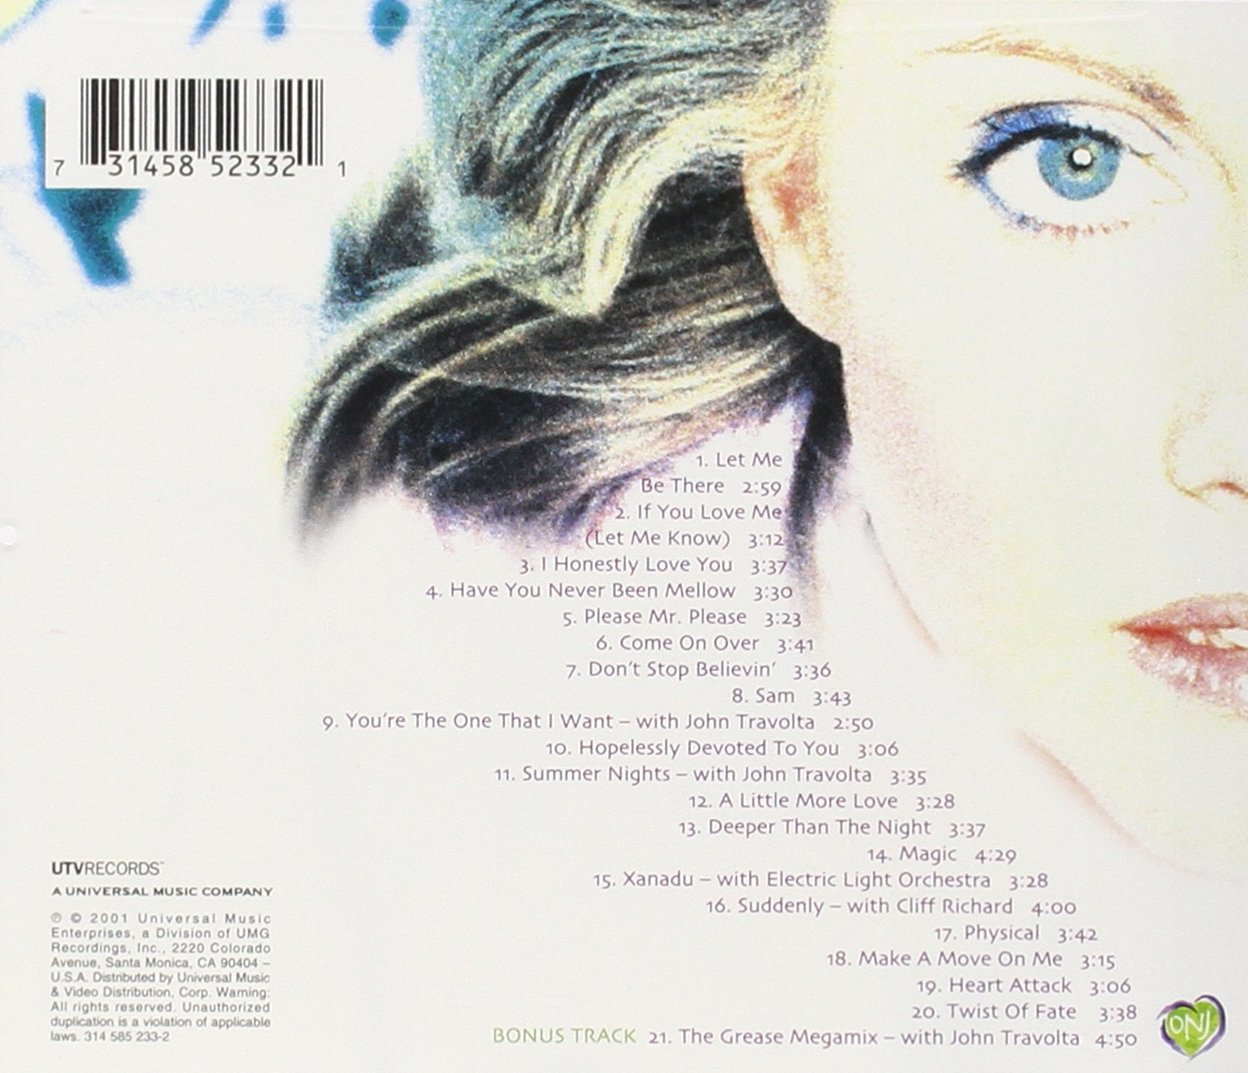 Magic: The Very Best of Olivia Newton-John by MCA